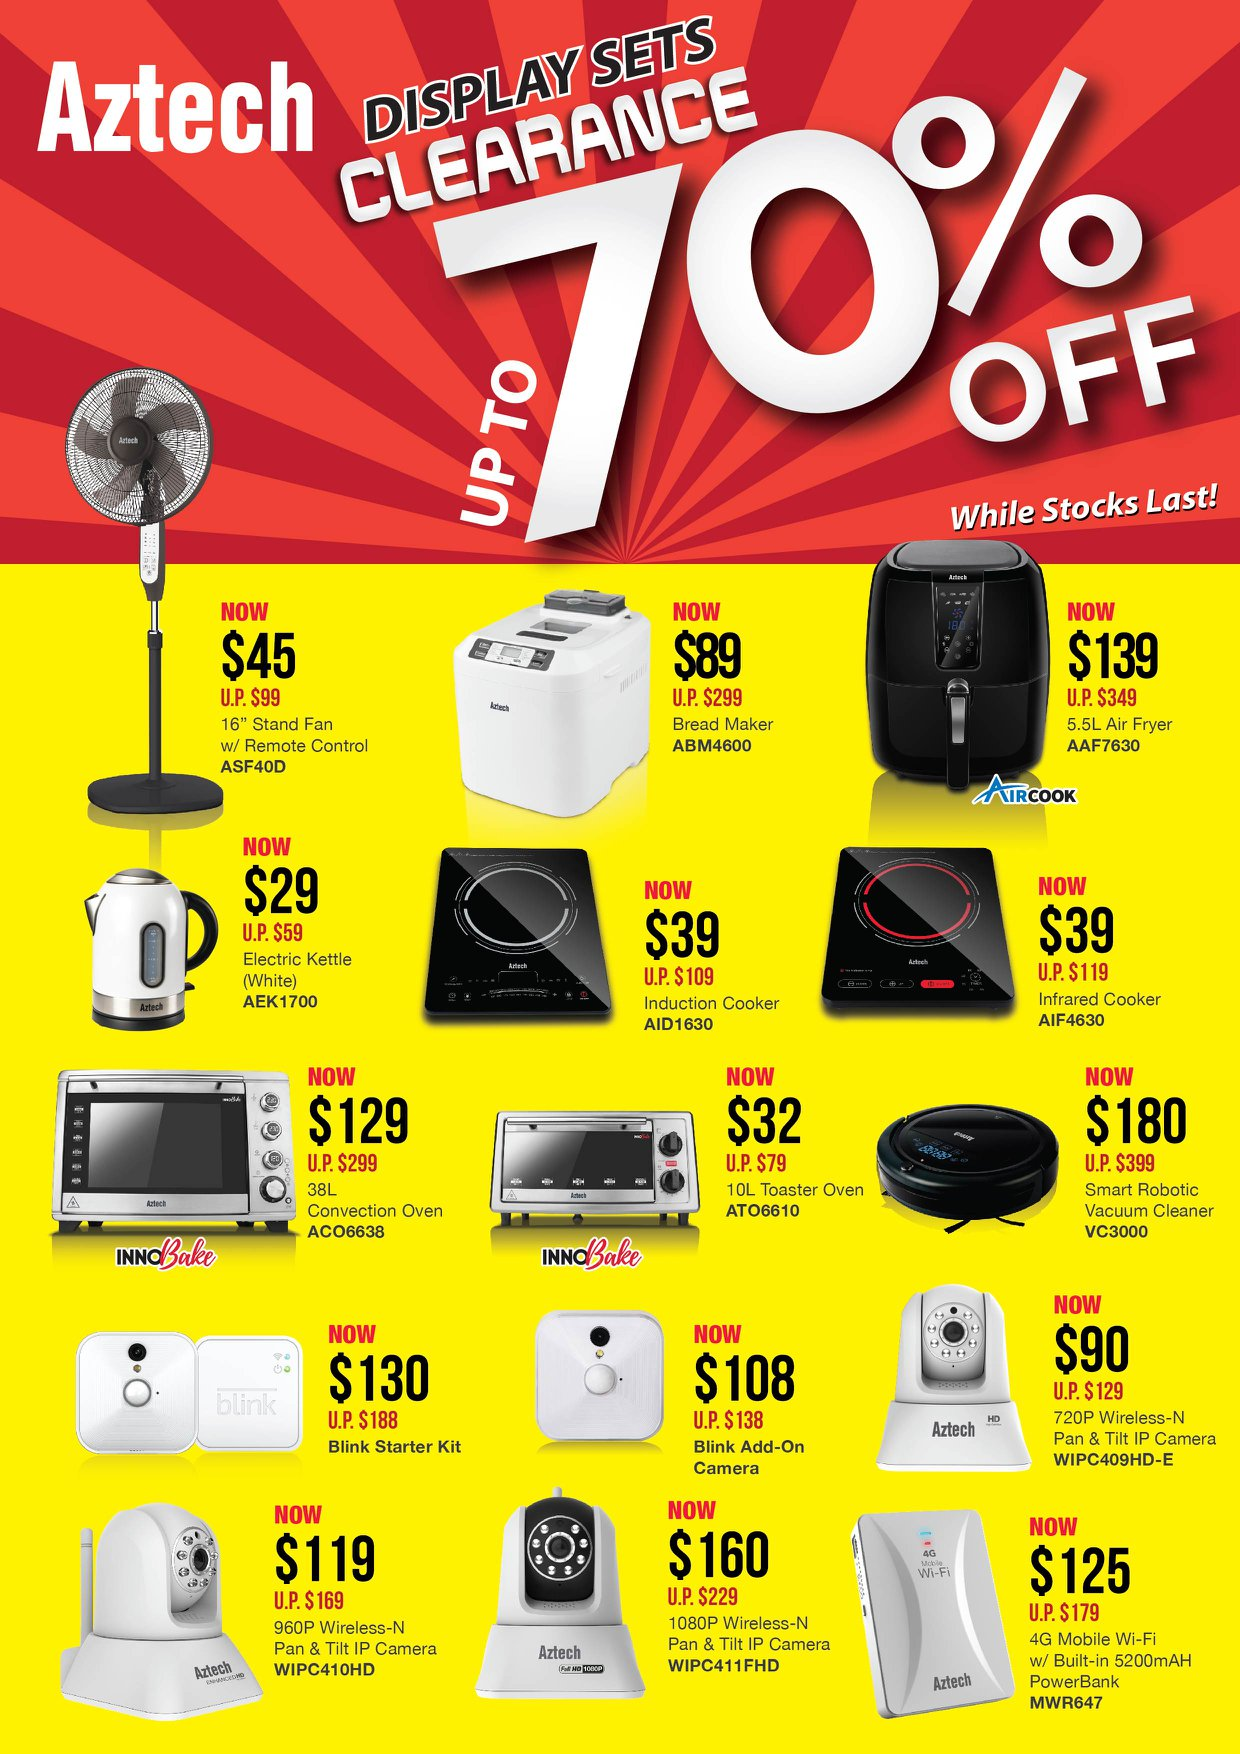 Aztech Singapore Display Units Clearance Sale Up to 70% Off Promotion While Stocks Last | Why Not Deals & Promotions